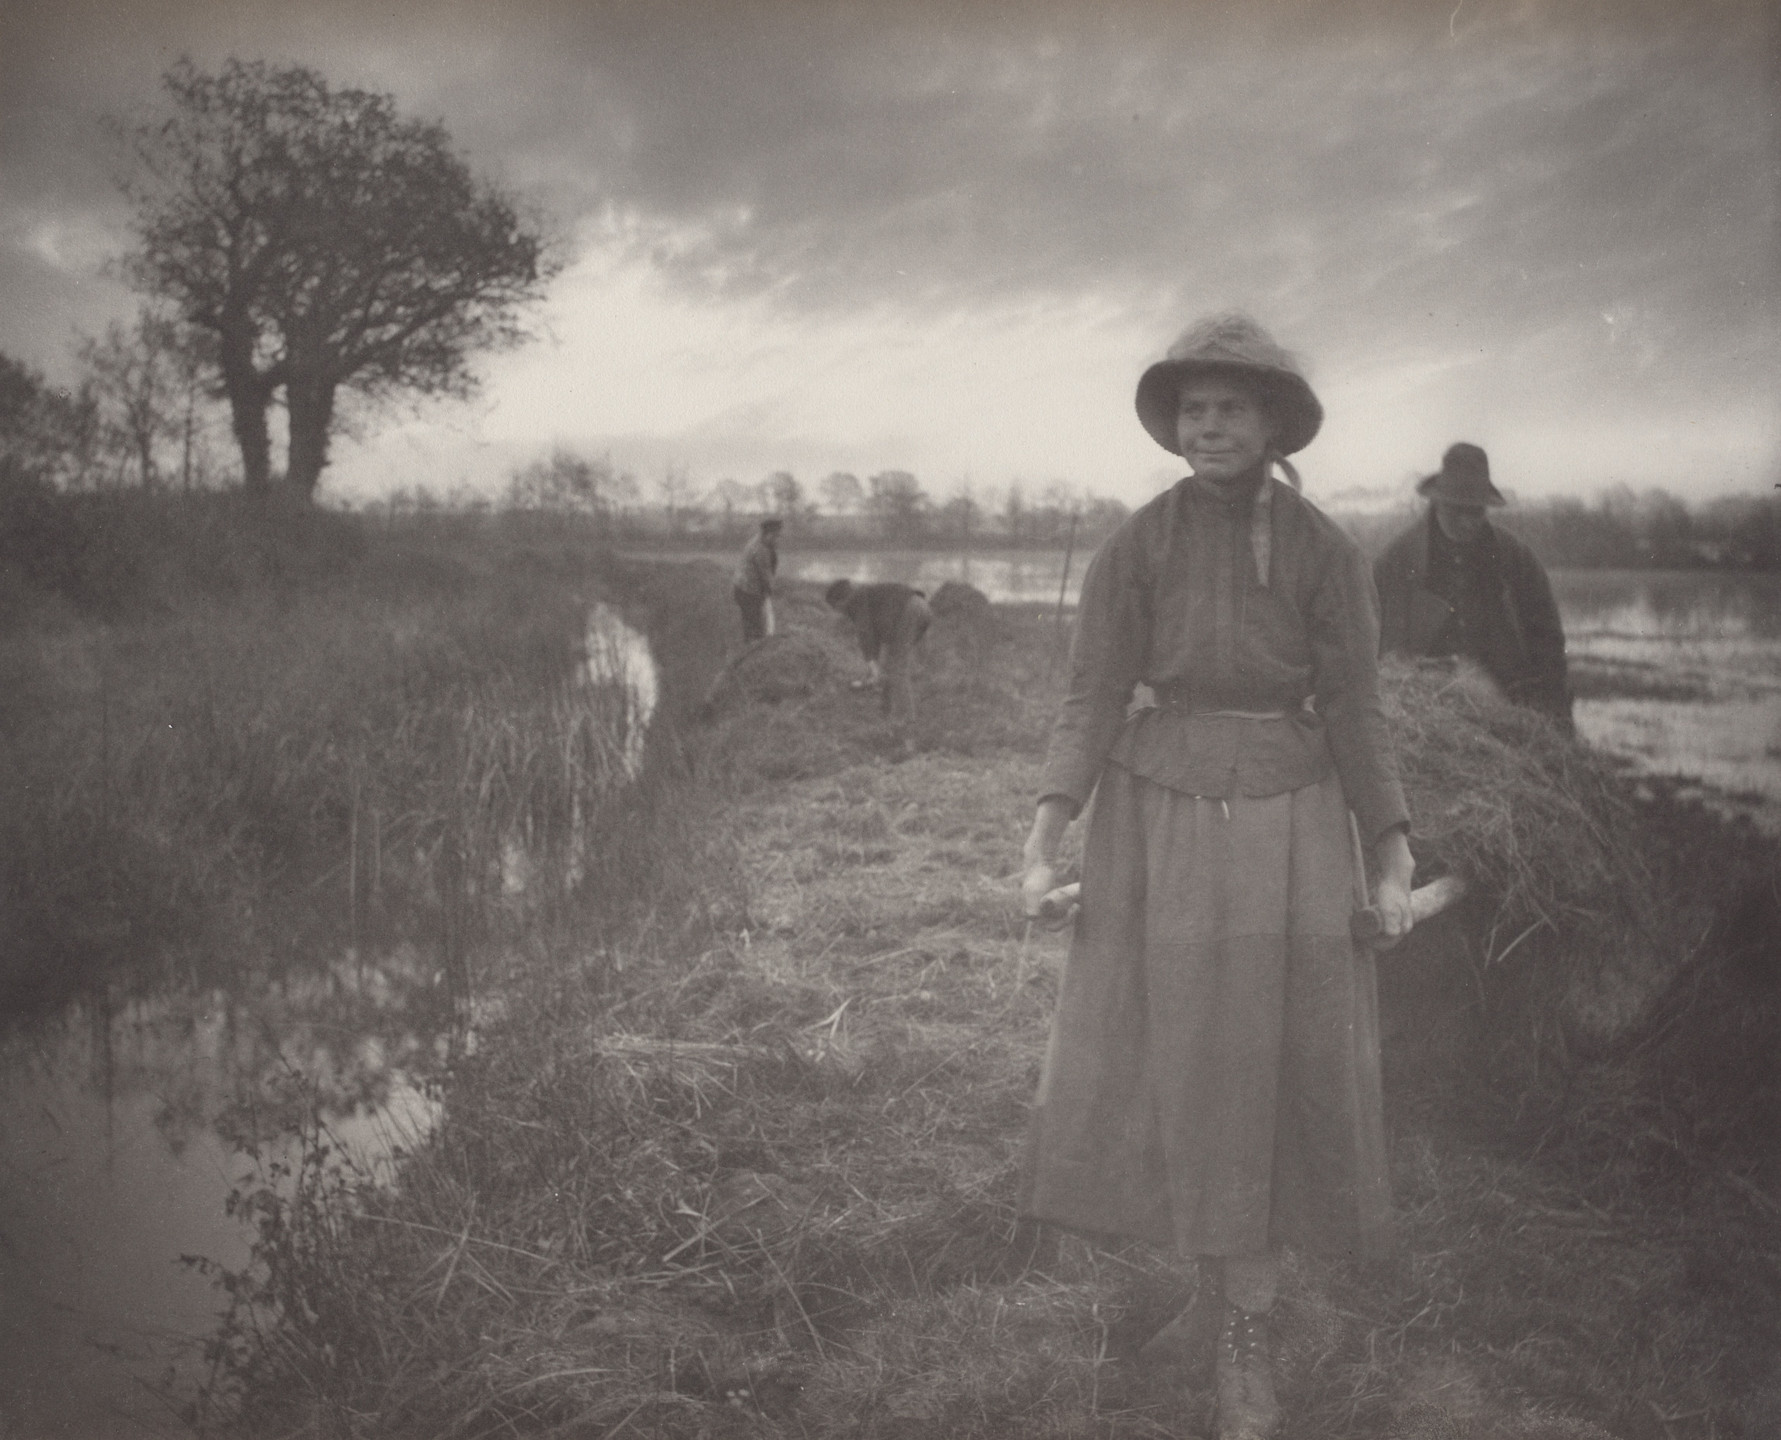 Peter Henry Emerson, T. F. Goodall. Poling the Marsh Hay from Life and Landscape on the Norfolk Broads (London, 1886). c. 1885